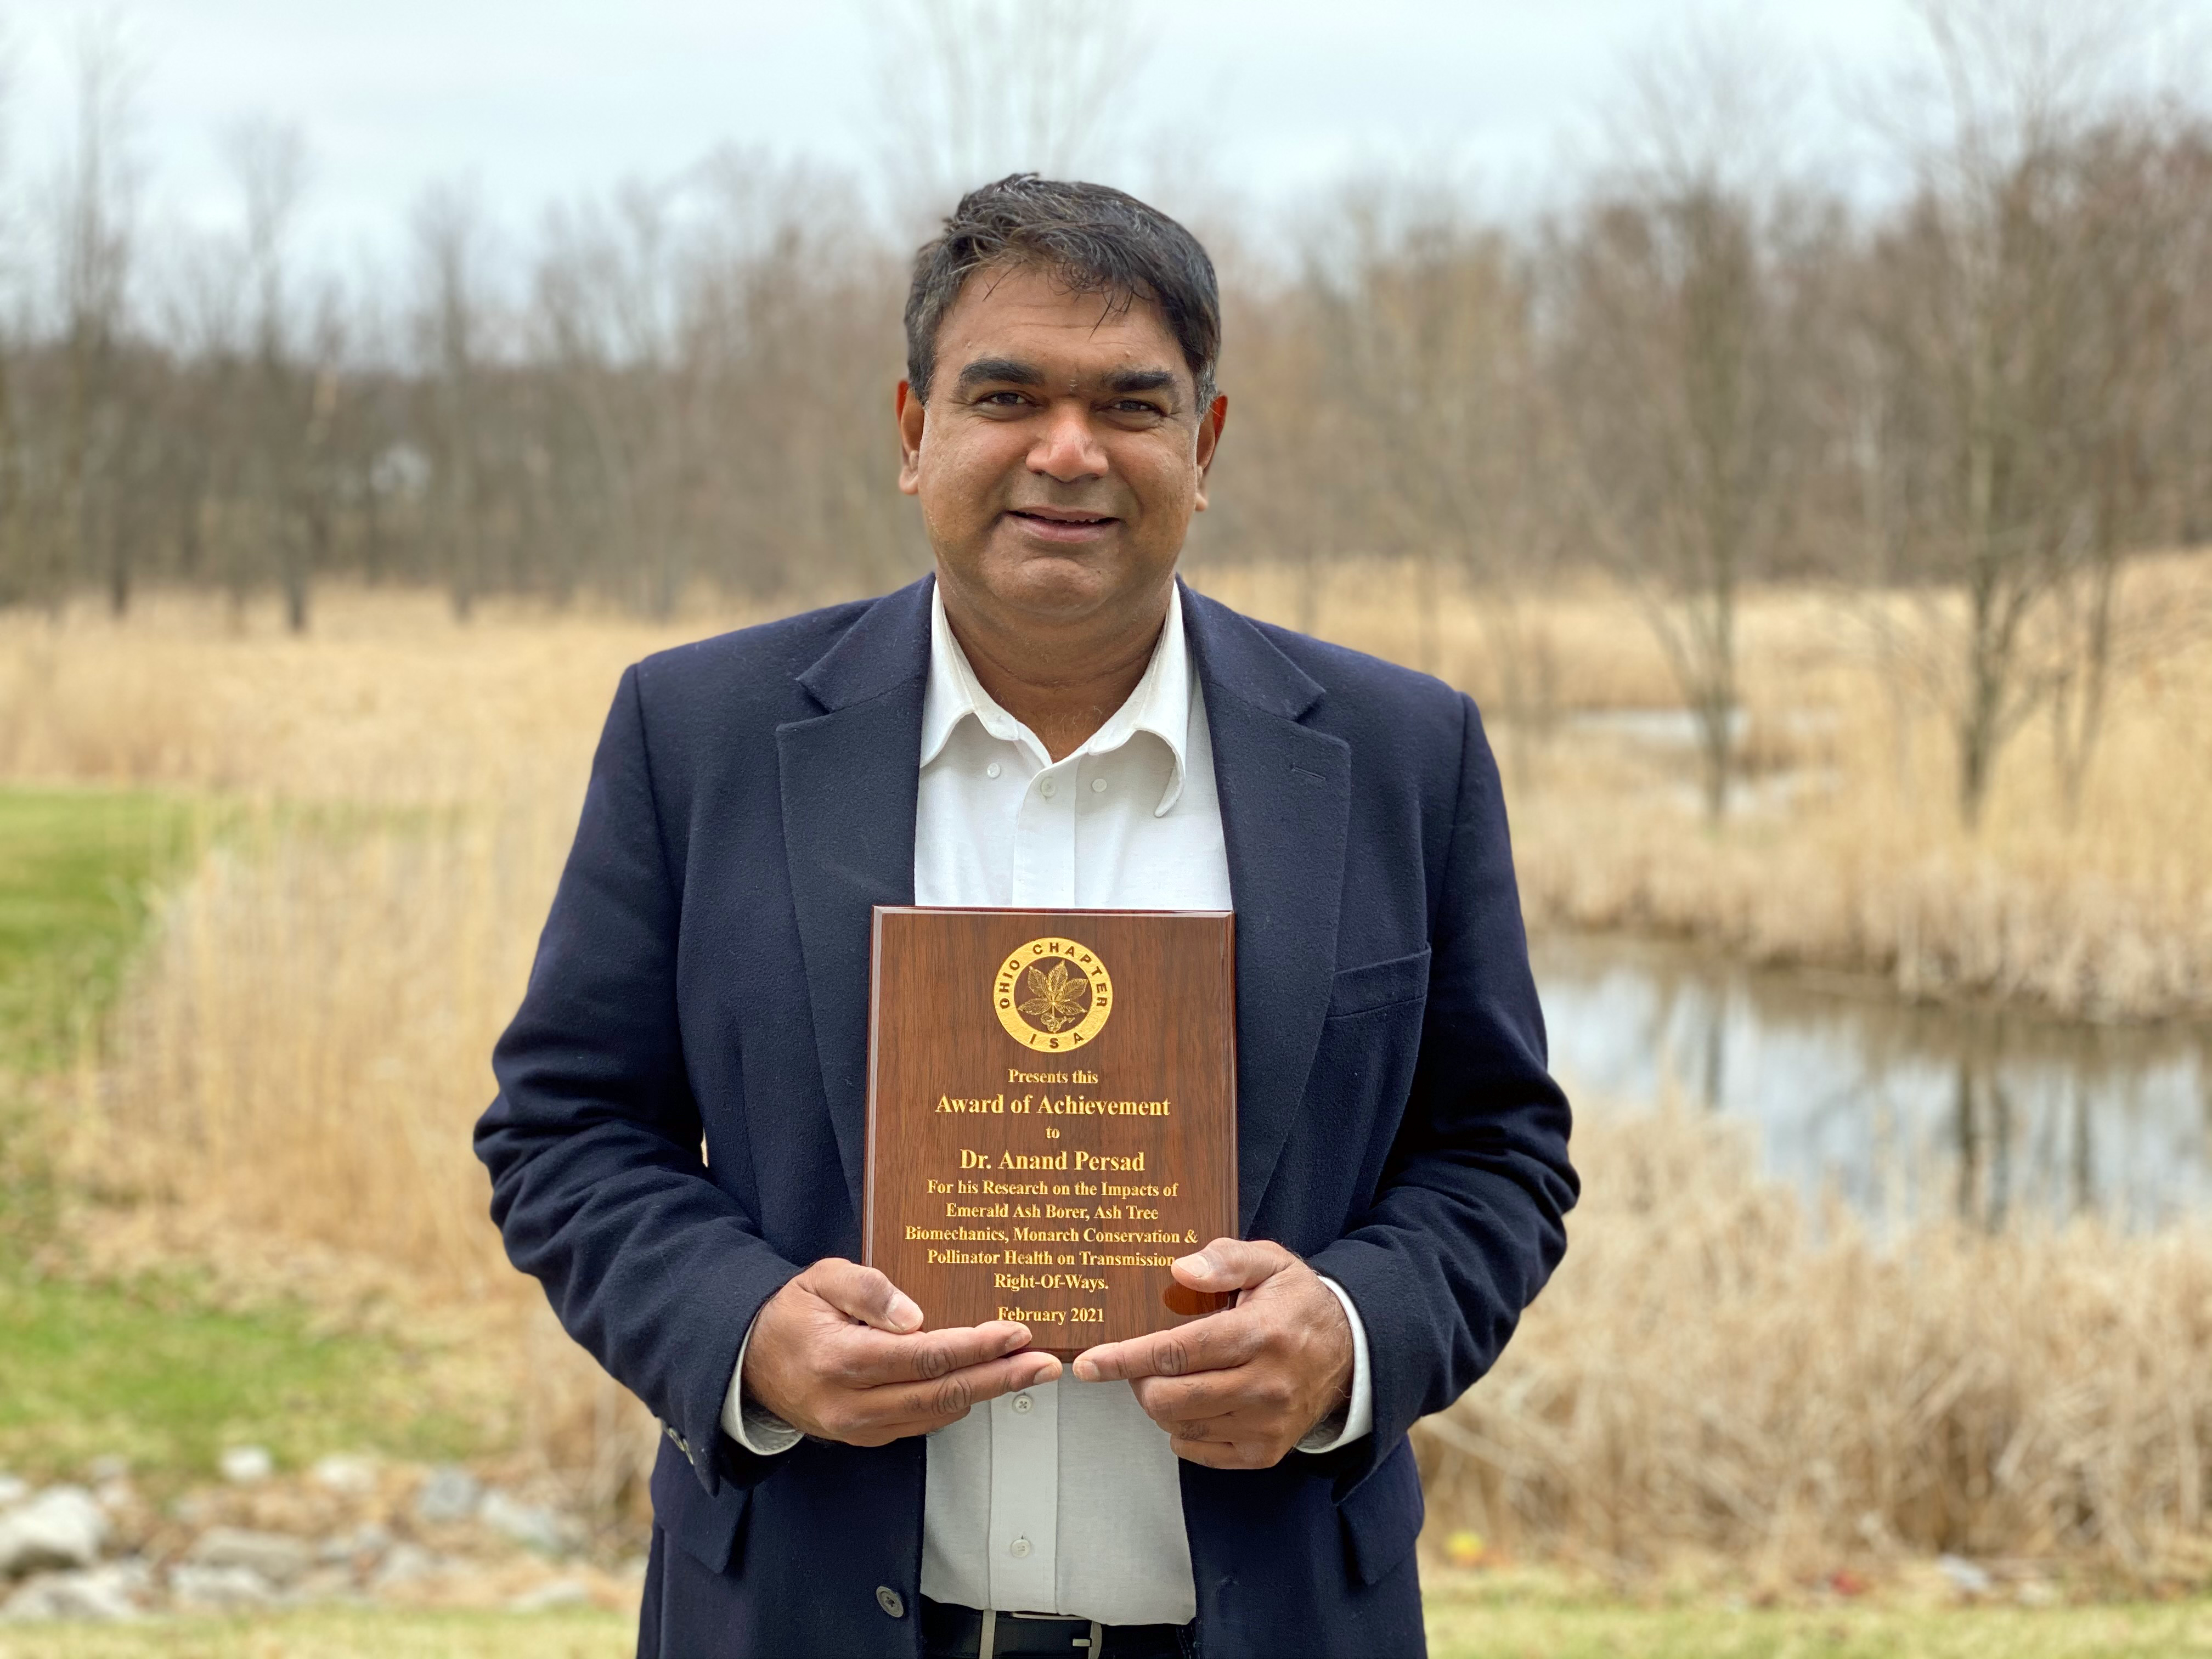 Director of Research, Science, and Innovation Honored for Research Efforts